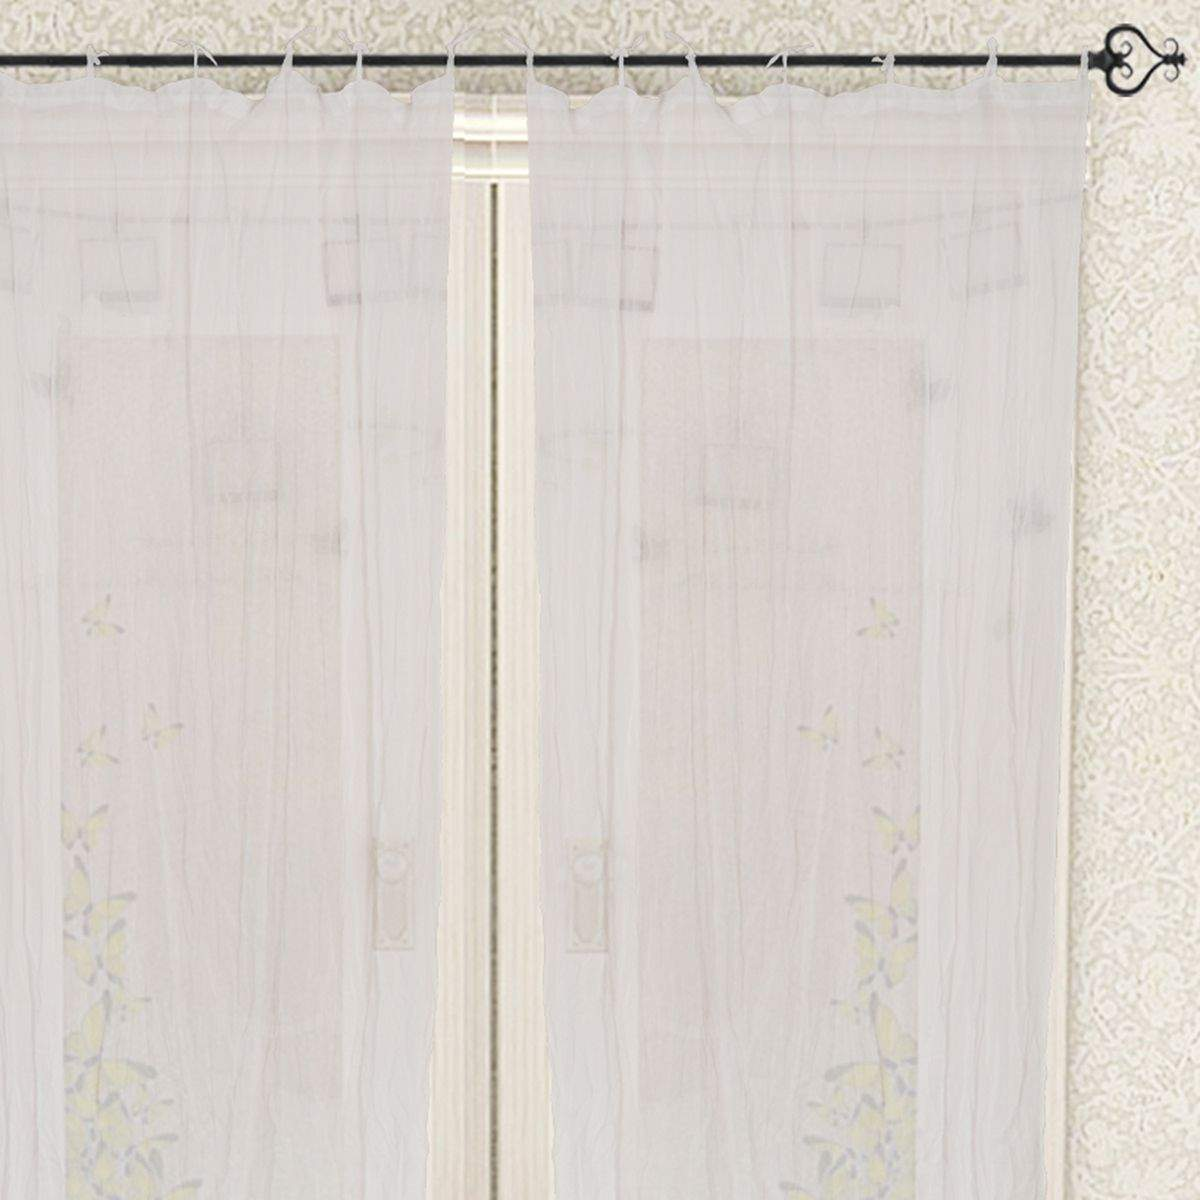 Tie Top Cotton Plain Solid White Curtain for Windows and Door